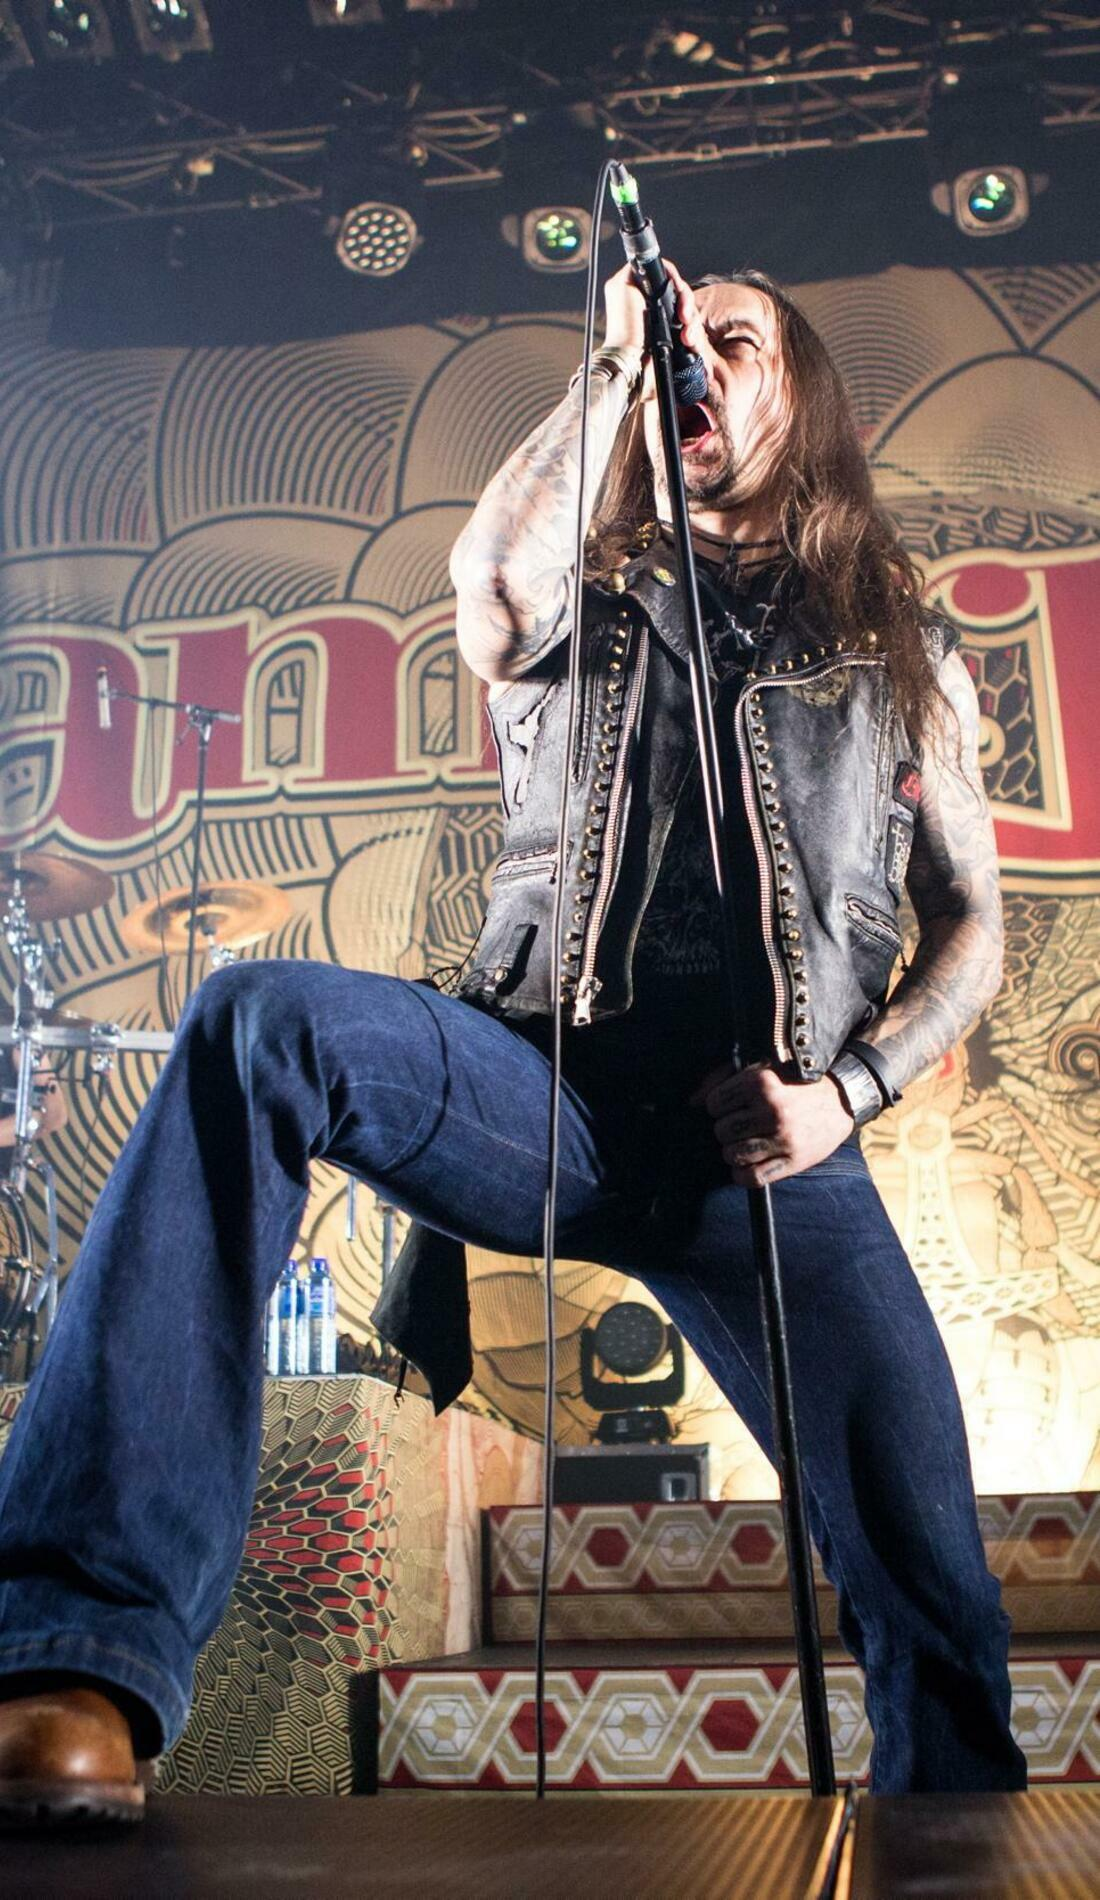 A Amorphis live event